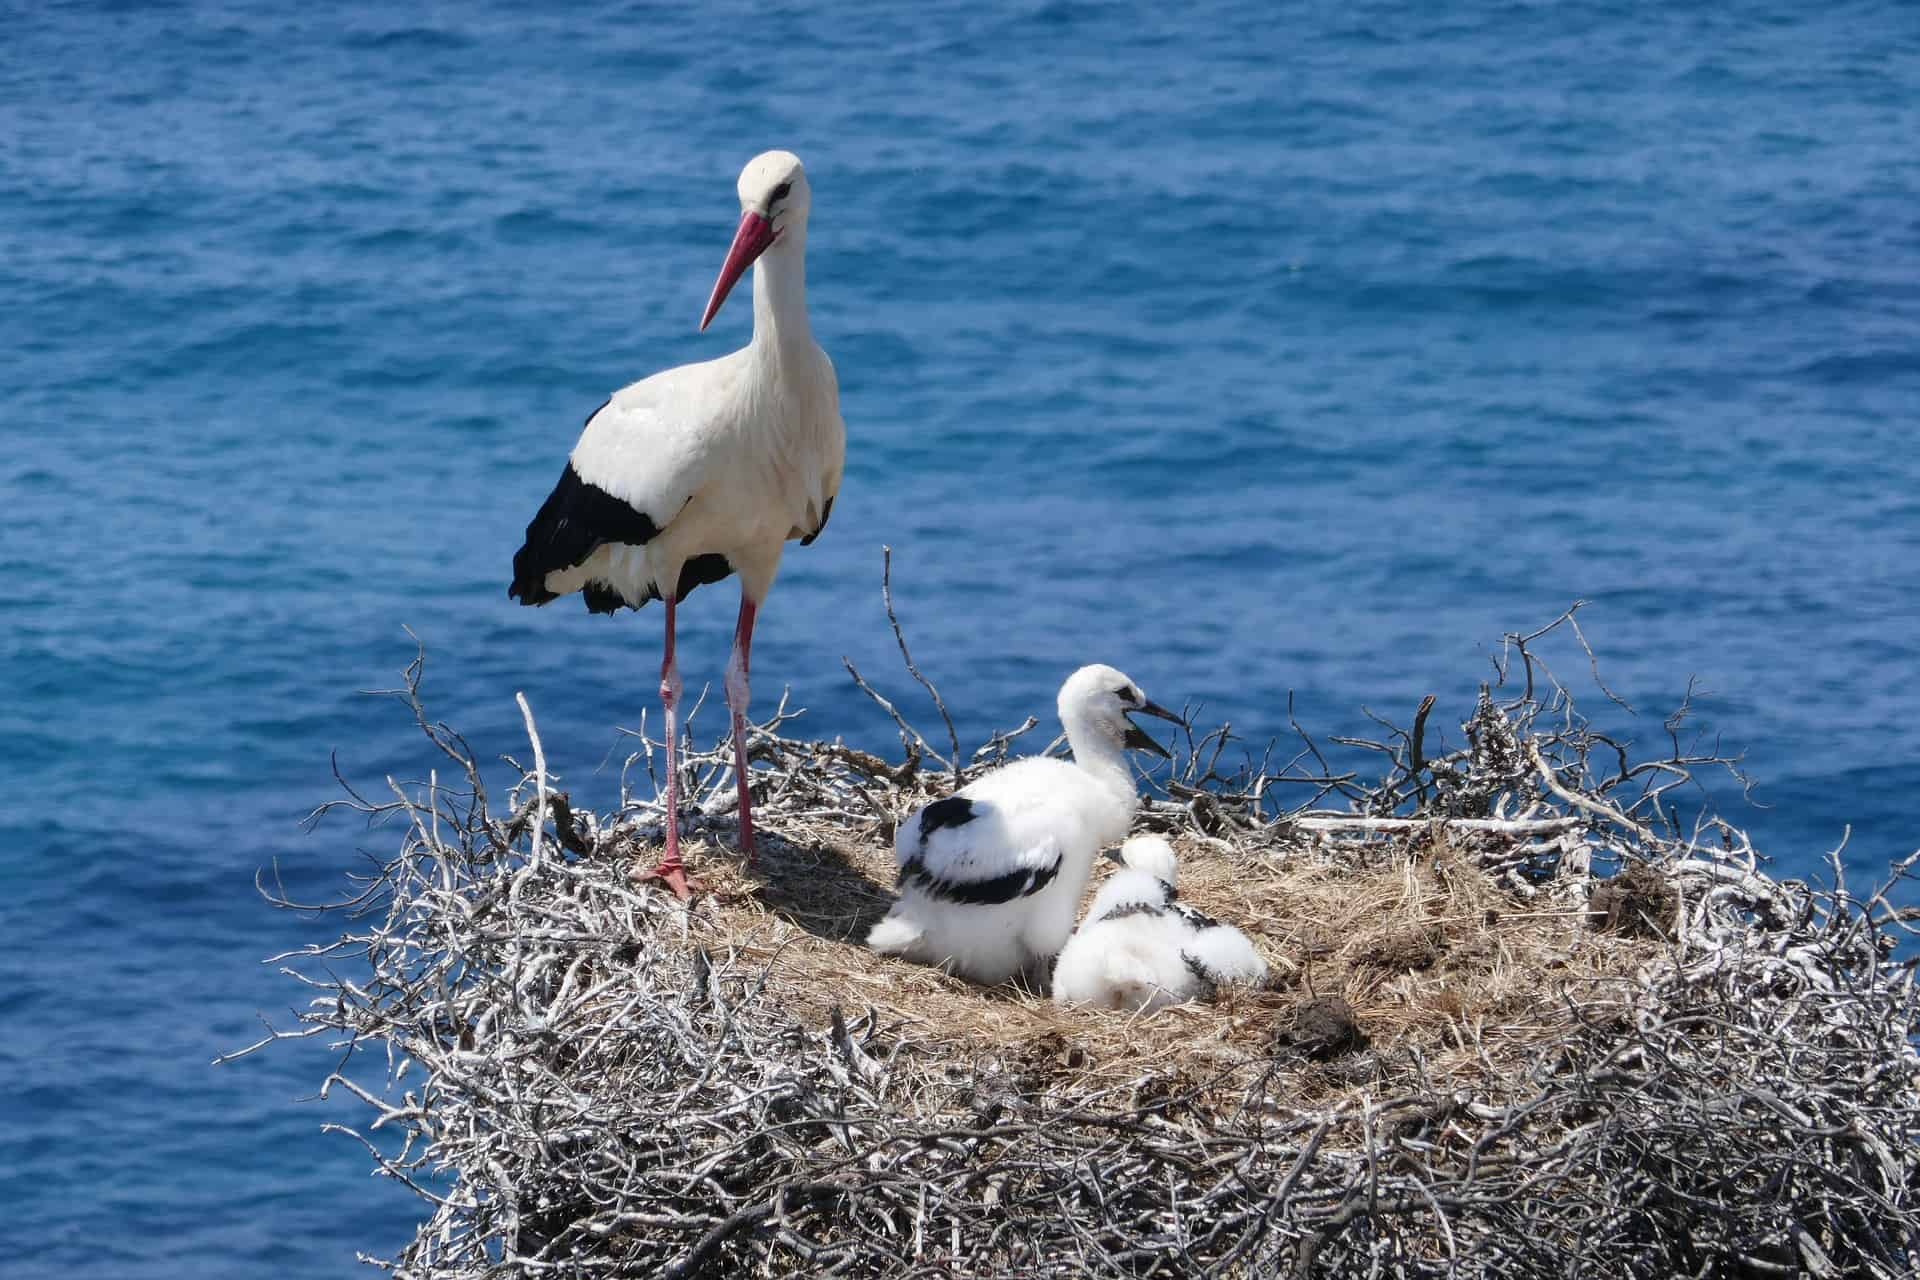 one of the cutest feature when you visit the Algarve in Winter - Storks! You see them everywhere! The Algarve region is an important stop over between the migration route between Europe and Africa